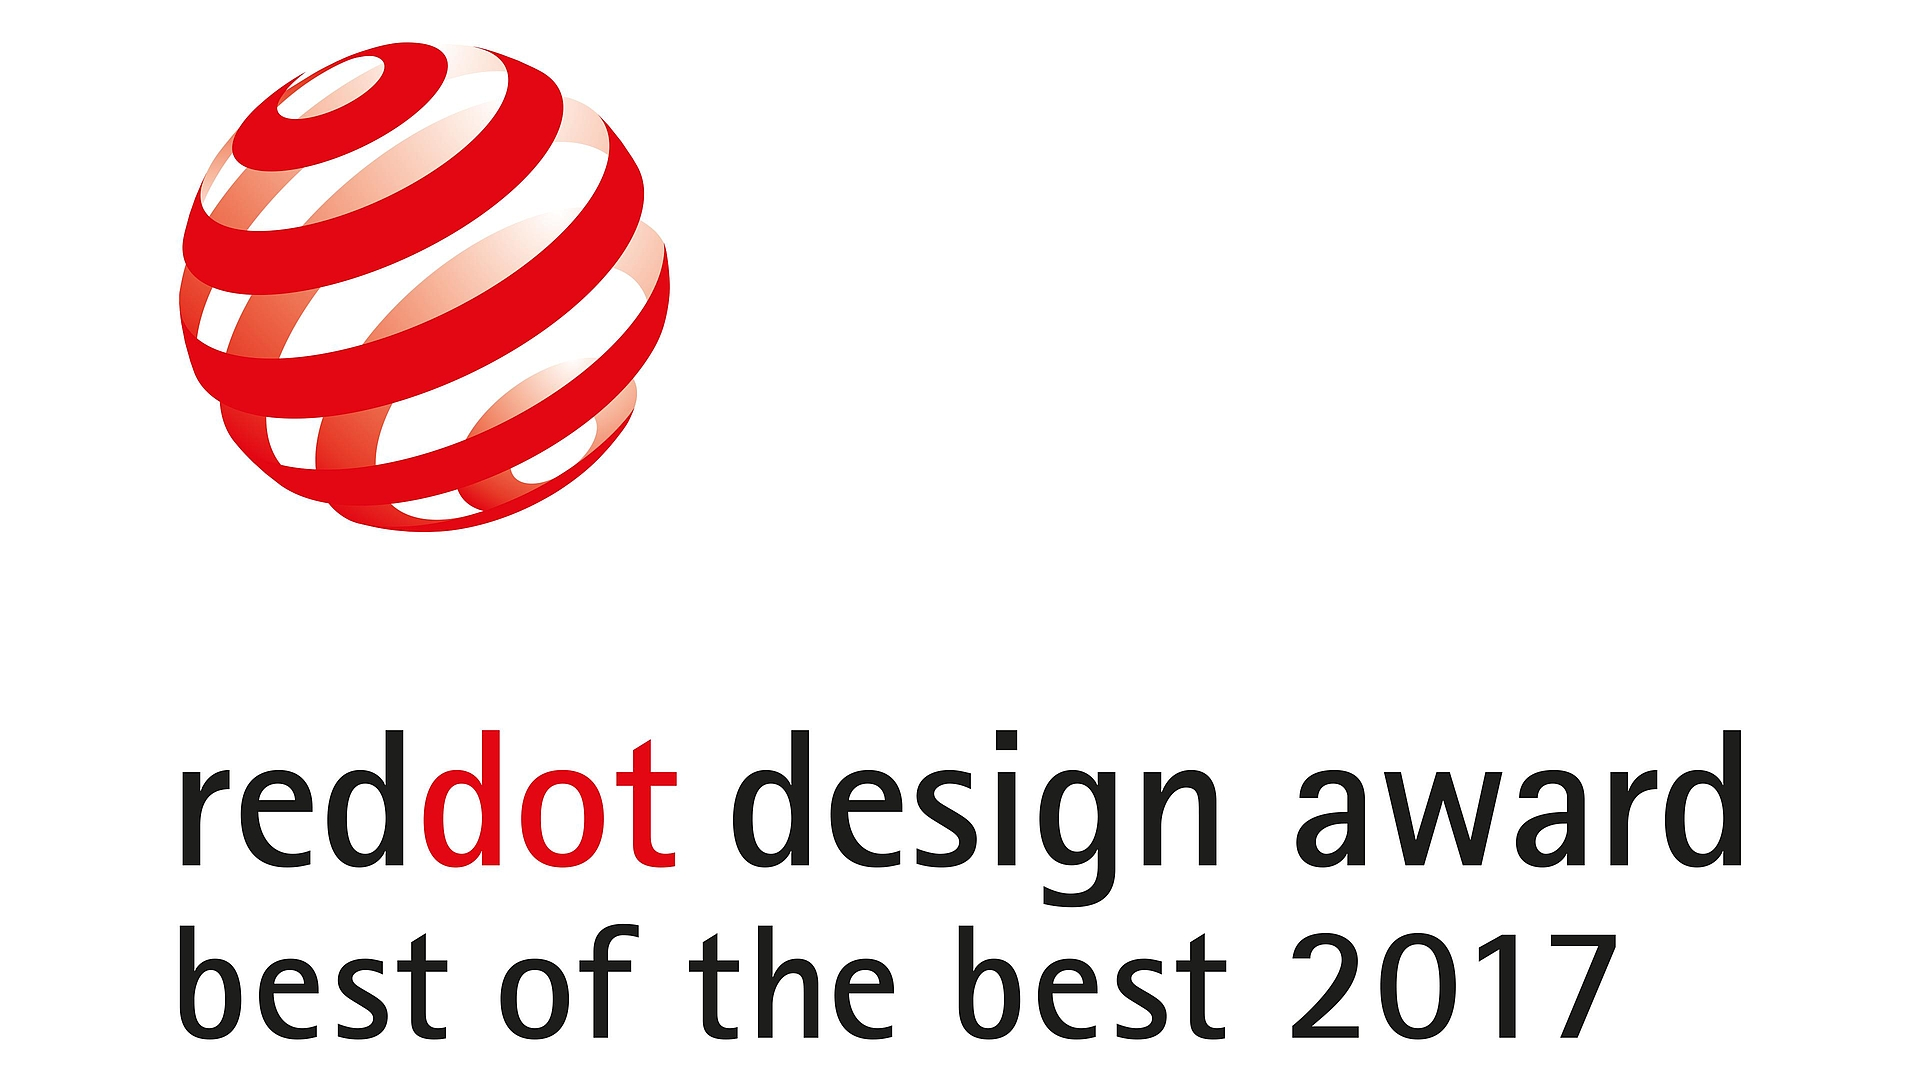 reddot design award best of the best 2017